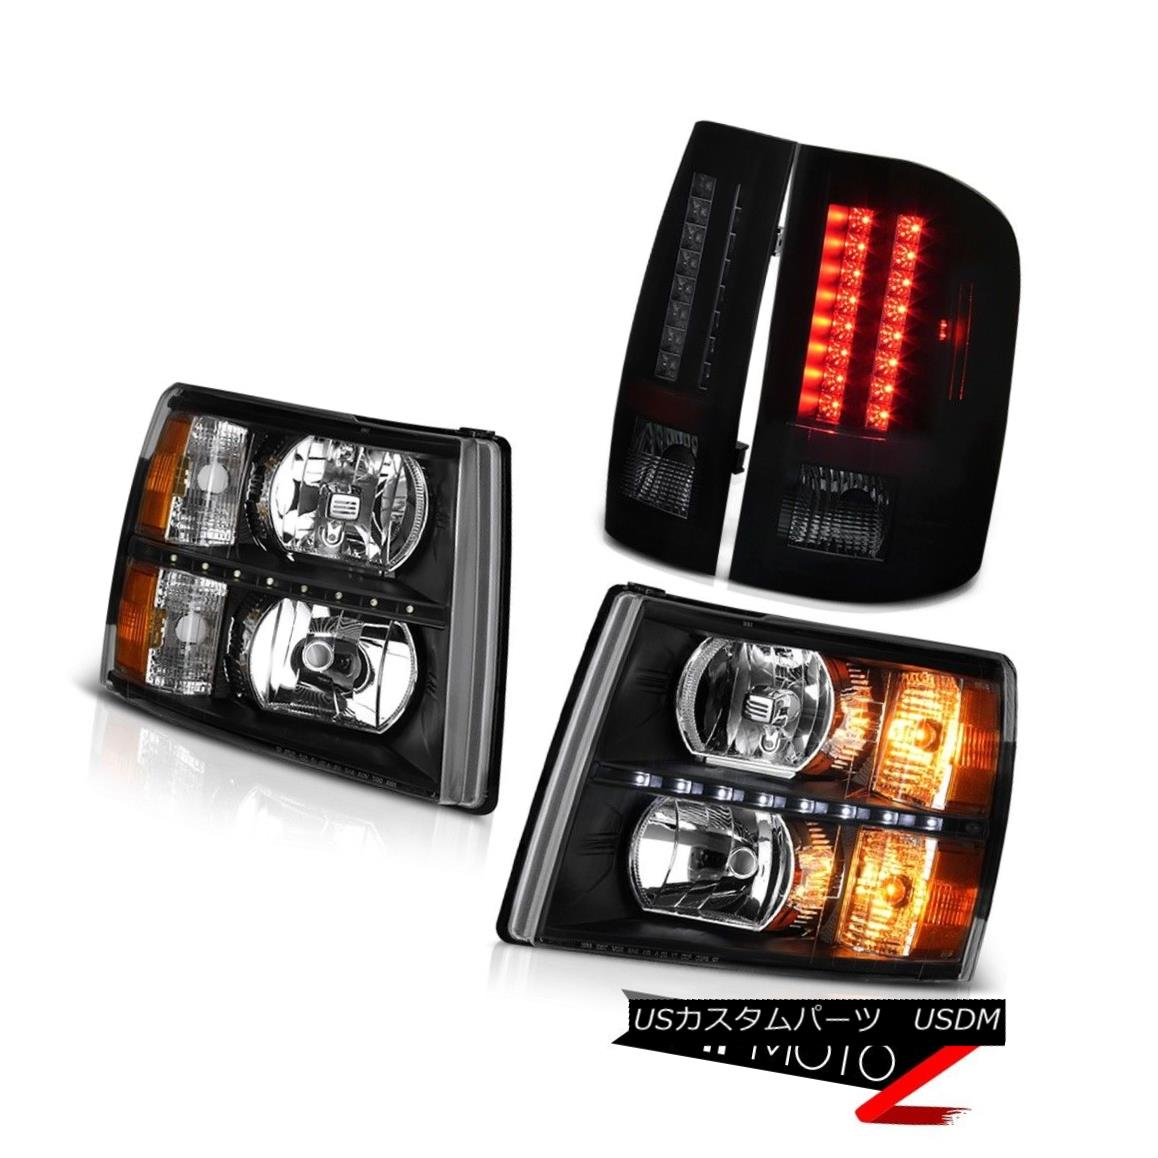 ヘッドライト 07-13 Silverado LT Raven Black Headlights LED DRL Tail Brake Lamps Oe Style SMD 07-13 Silverado LT RavenブラックヘッドライトLED DRLテールブレーキランプOe Style SMD